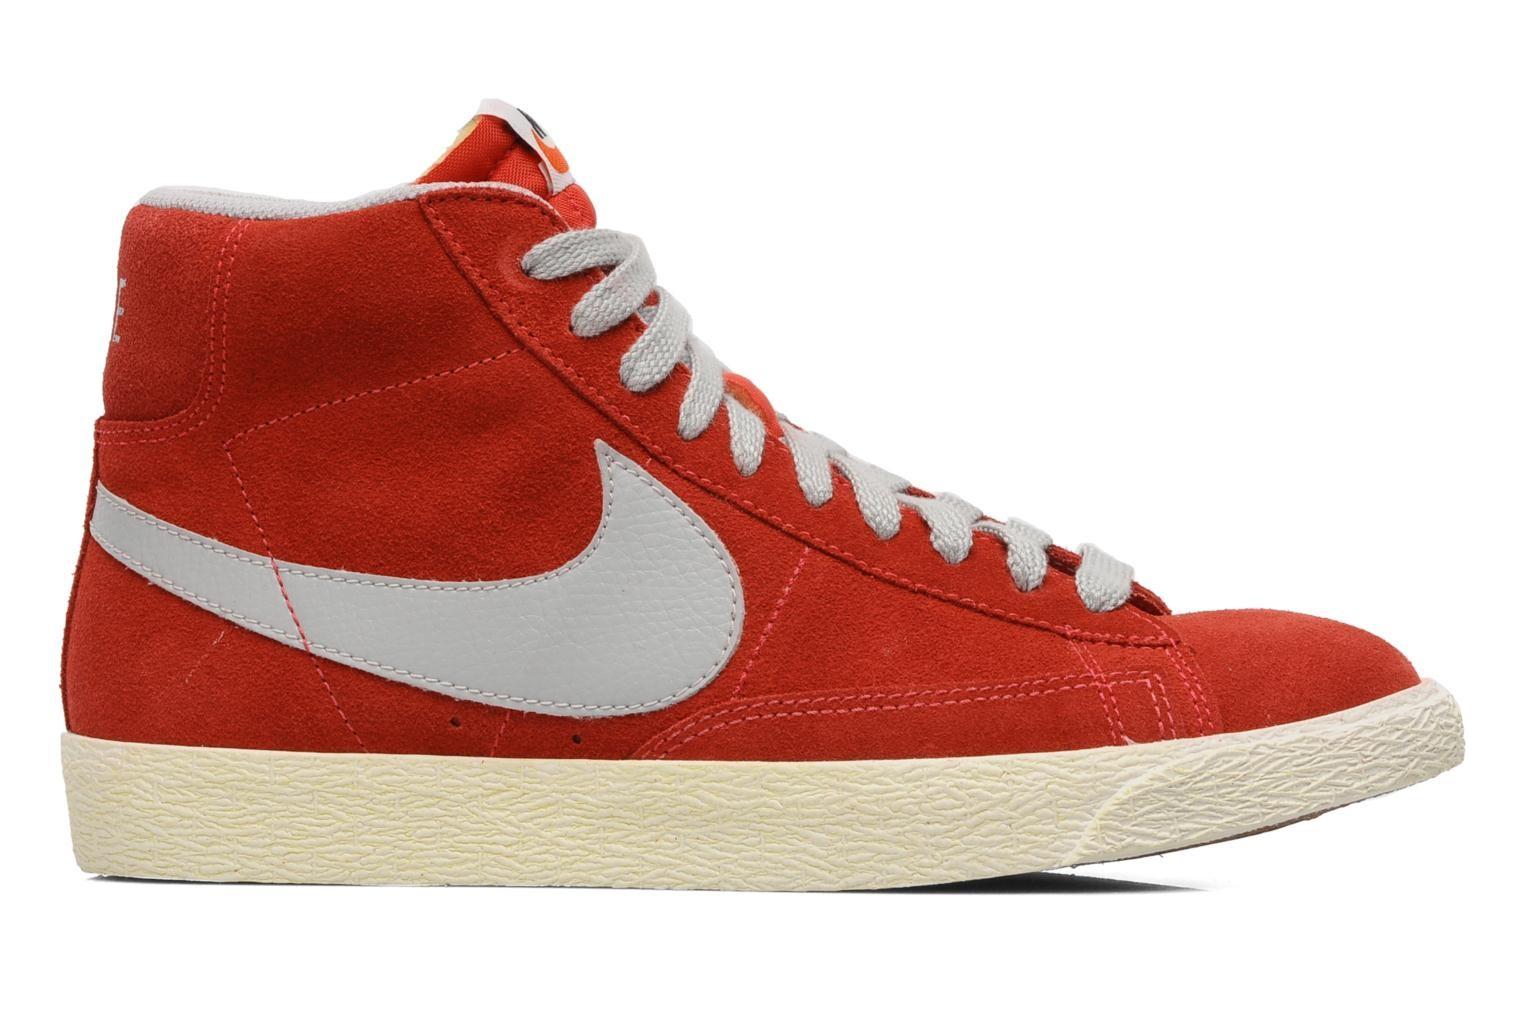 Nike Blazer Mid Prm Vintage Suede Hyper Red Street Grey Gum Med Brown Sail Men's Shoe